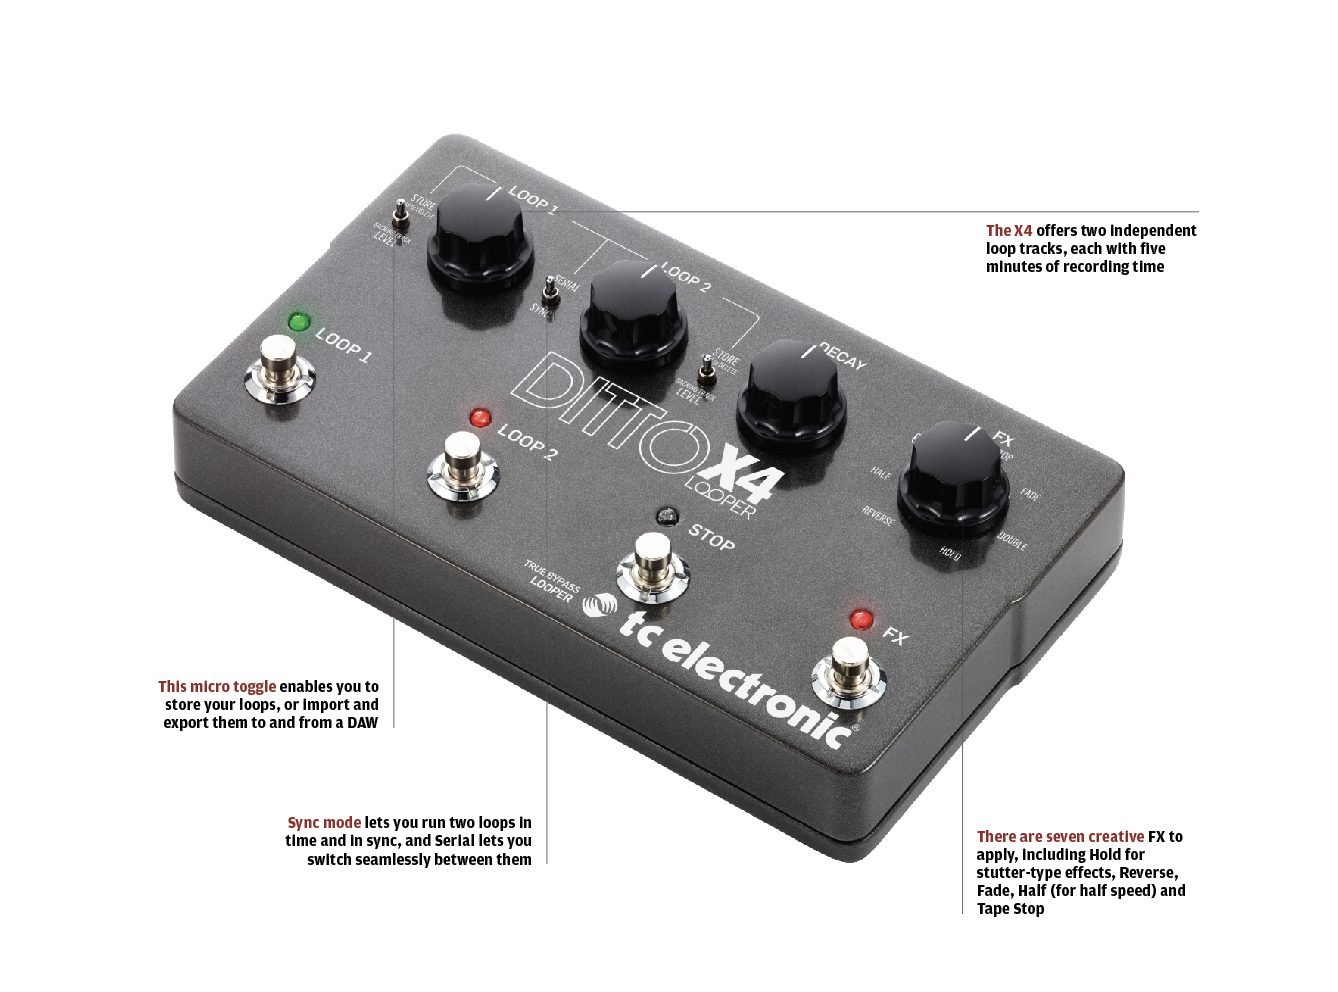 The 20 Best Fx Pedals In World Today All Things Problems Inside Big Pedal Enclosure Using Through Hole Components A Floor Based Looper Unit Which Enables You To Run Two Loops Simultaneously And Add Effects Without Confusing Hell Out Of